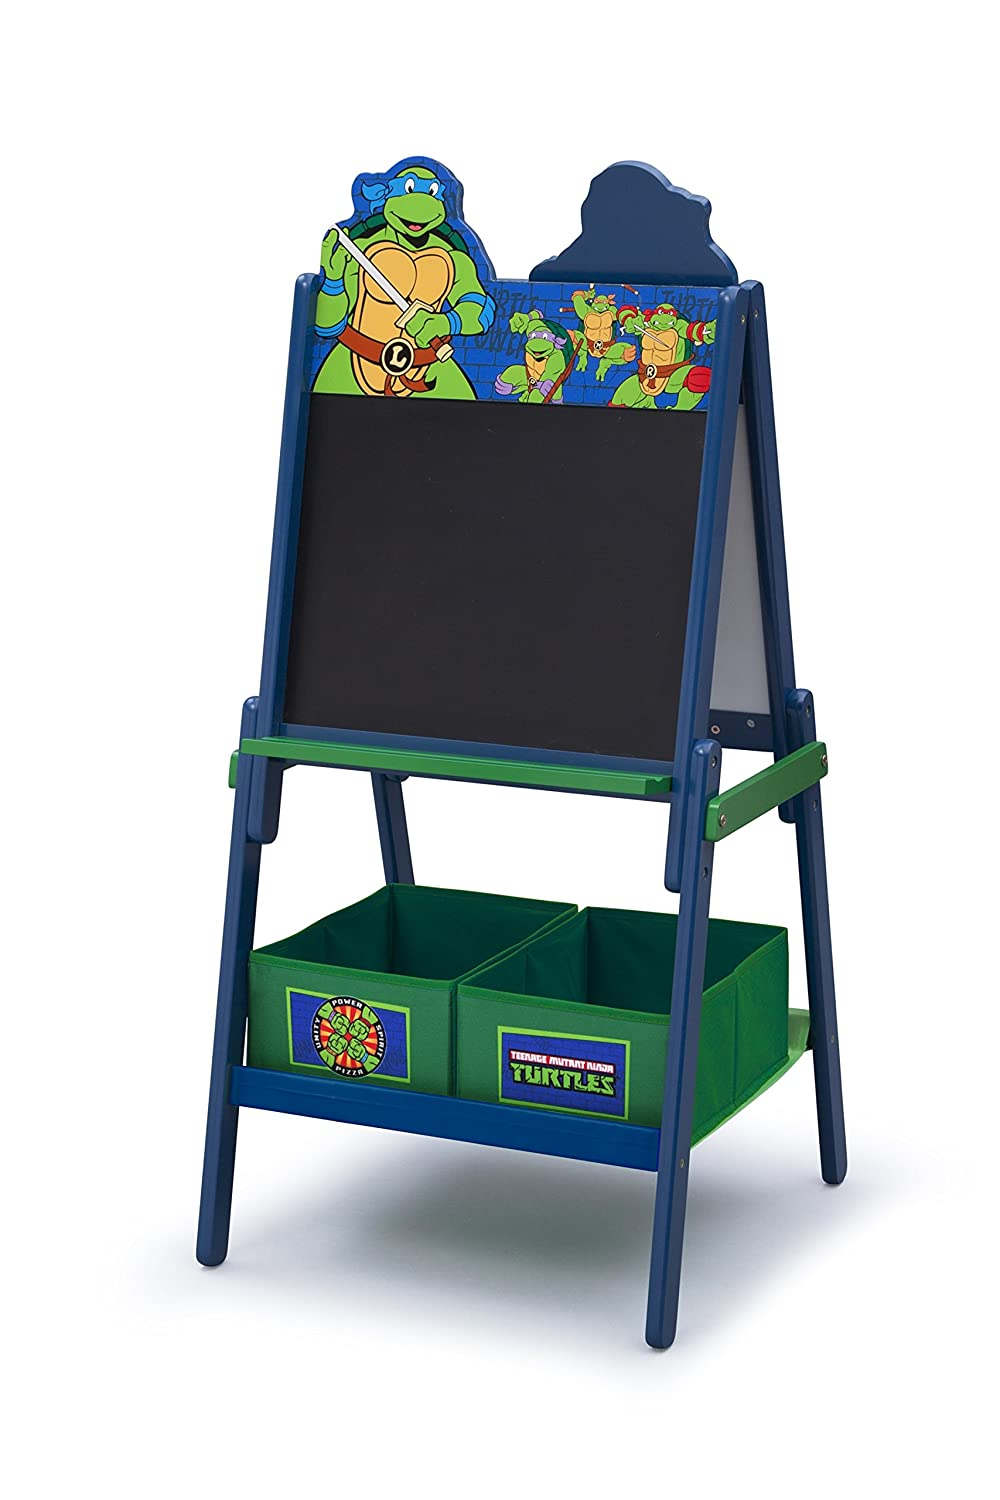 Delta Children Wooden Double Sided Activity Easel with Storage, Nickelodeon Teenage Mutant Ninja Turtles